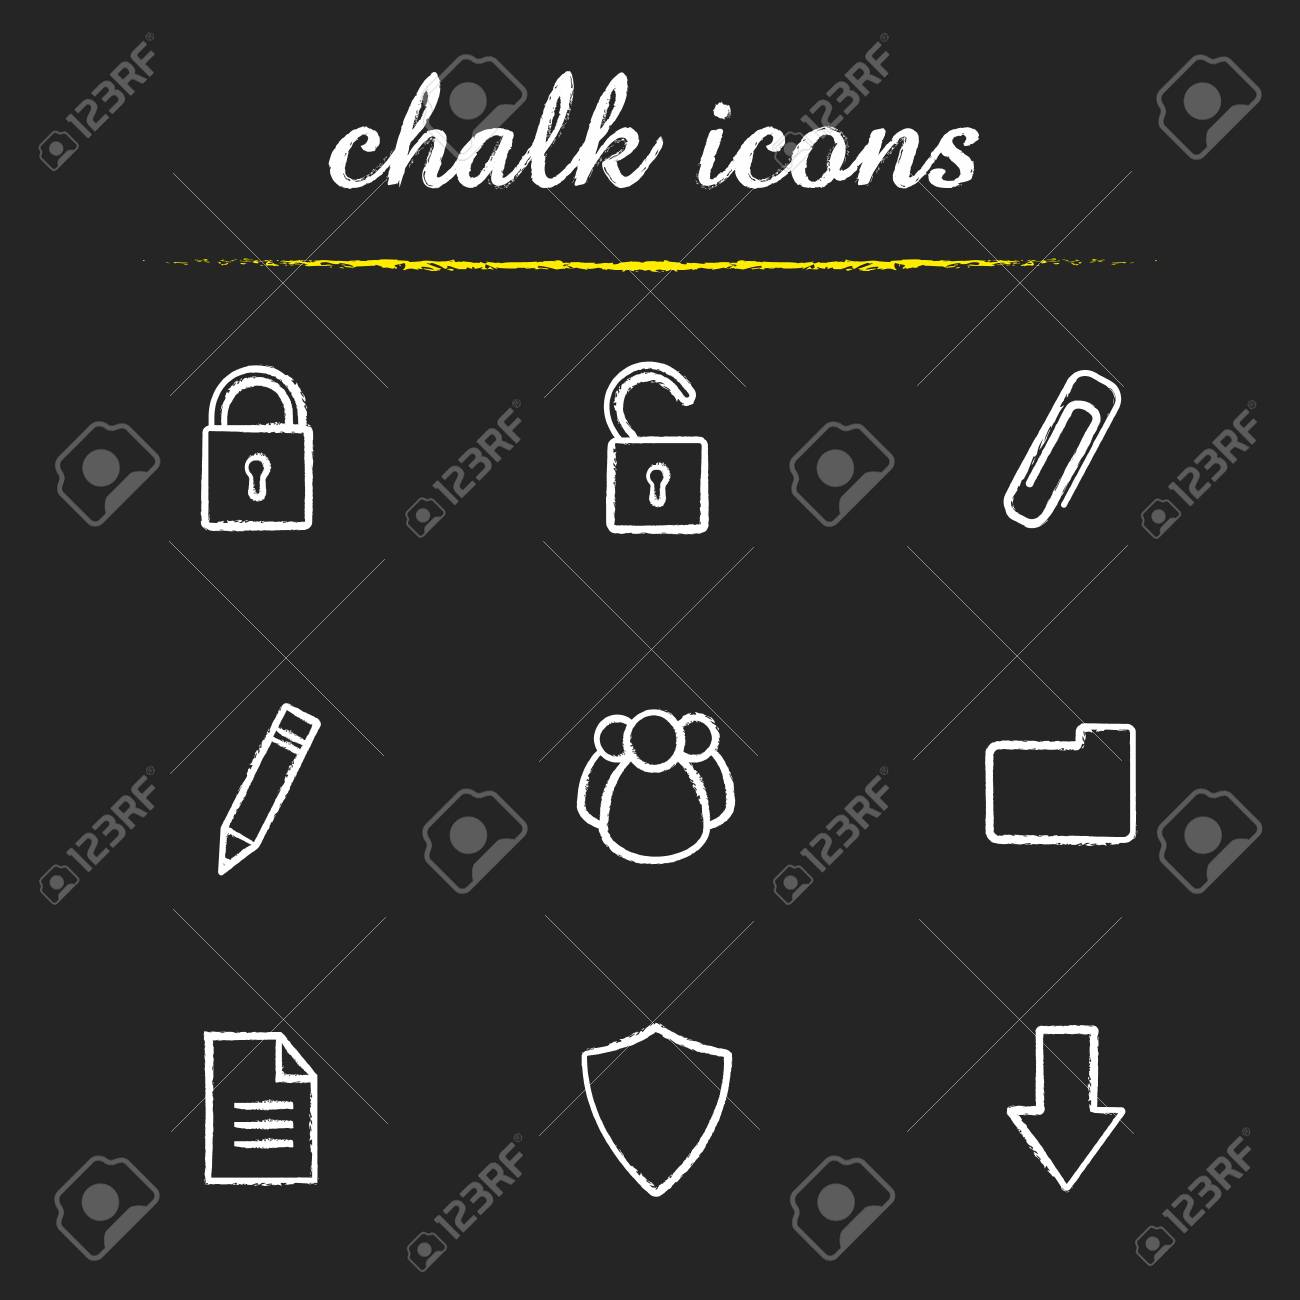 Digital chalk icons set  Cyber security  Access granted and denied,